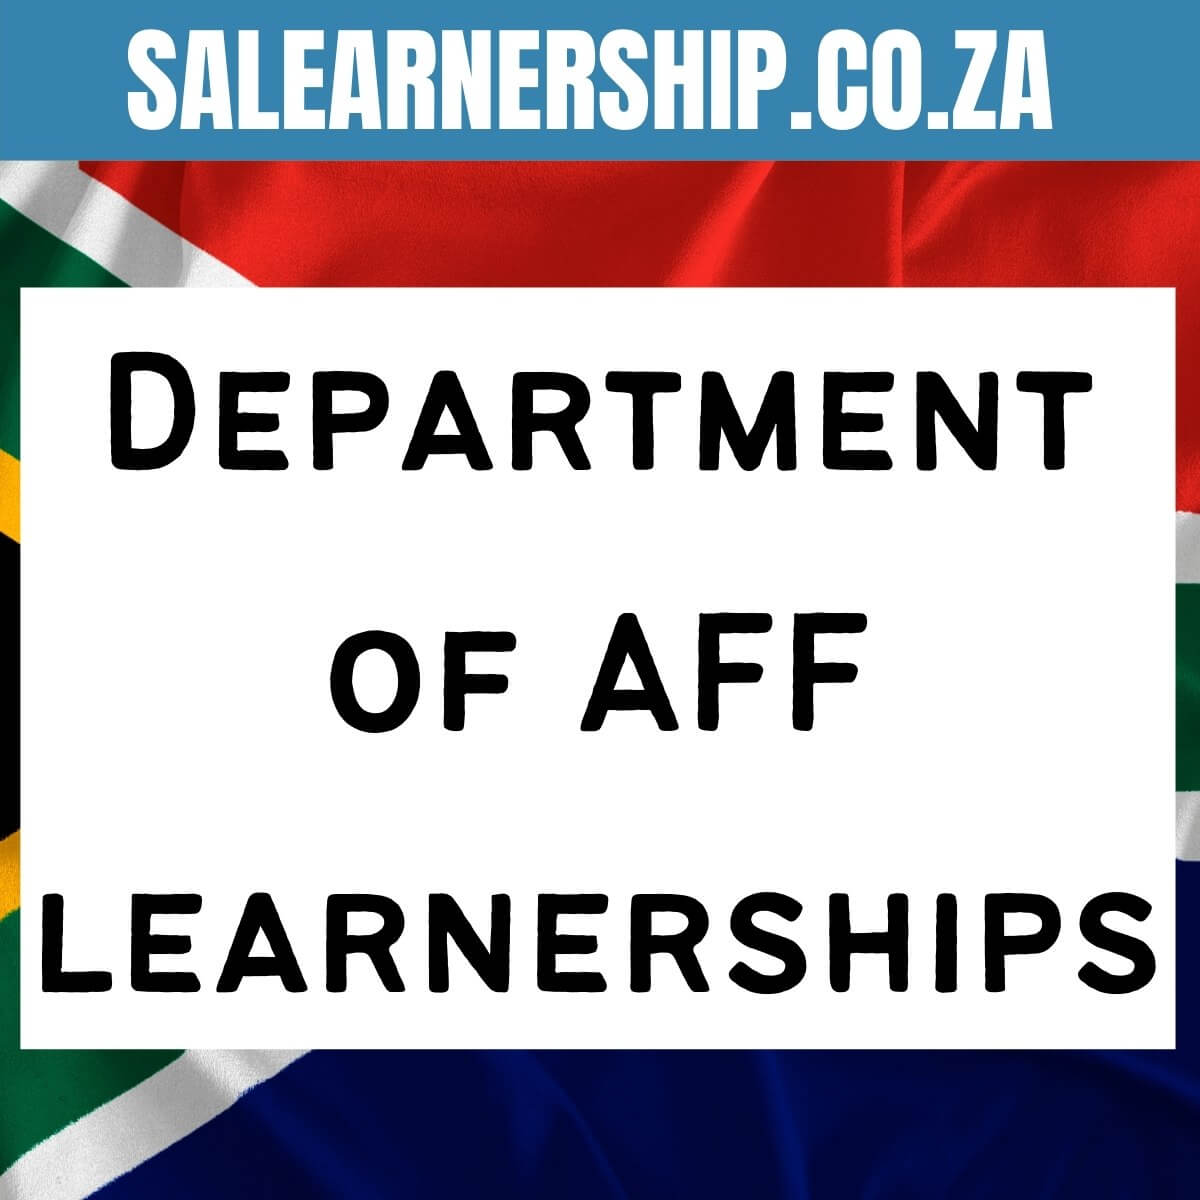 Department of agriculture forestry fishery learnerships